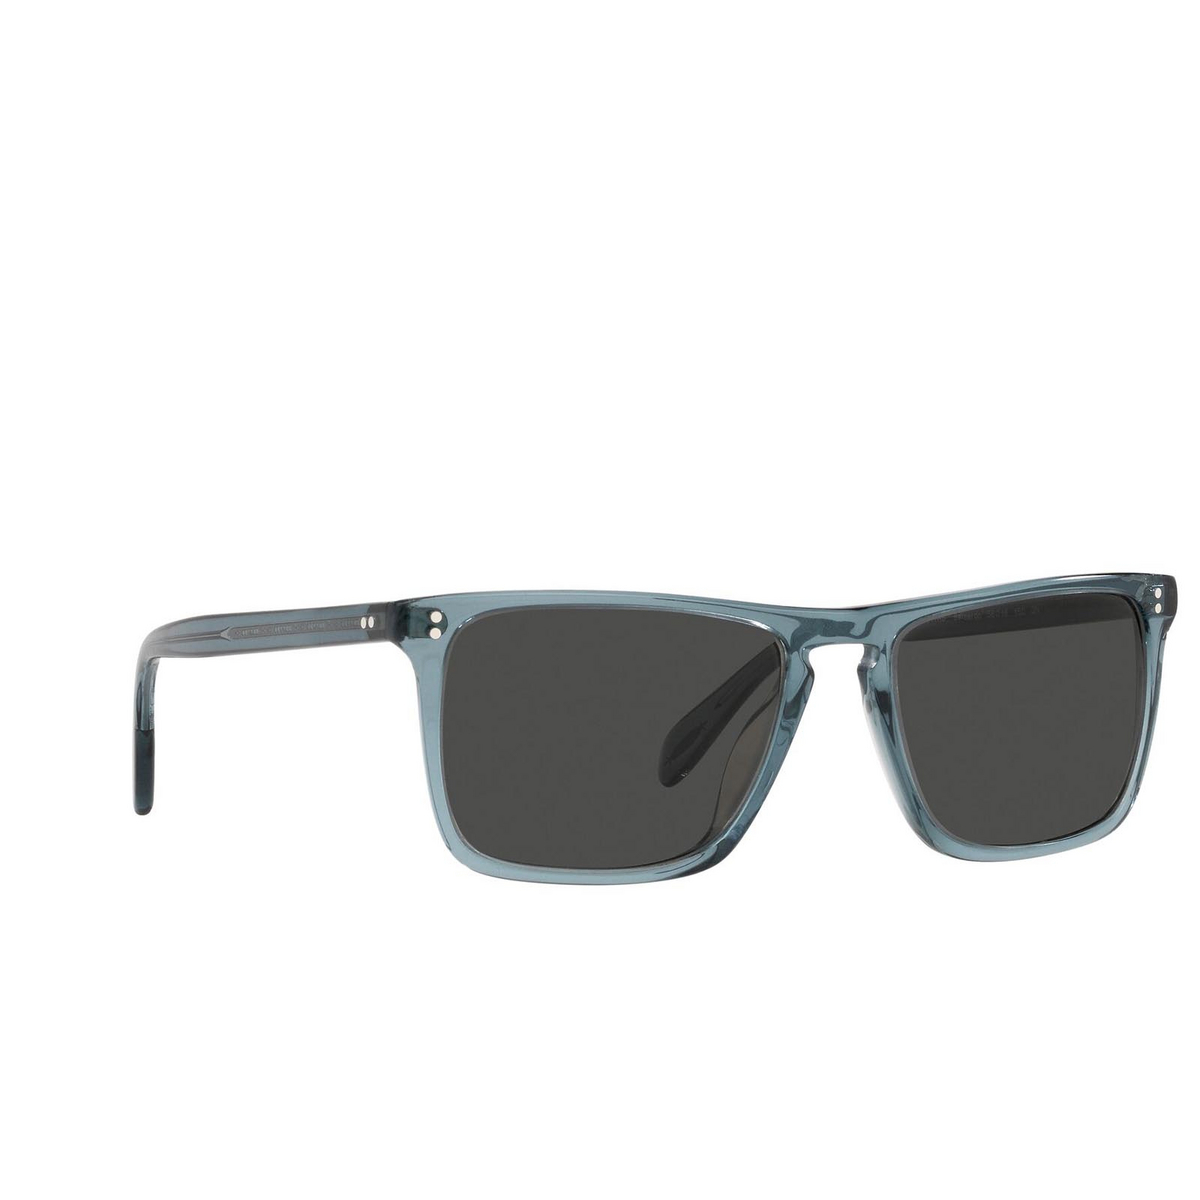 Oliver Peoples® Square Sunglasses: Bernardo OV5189S color Washed Teal 1617R5 - three-quarters view.